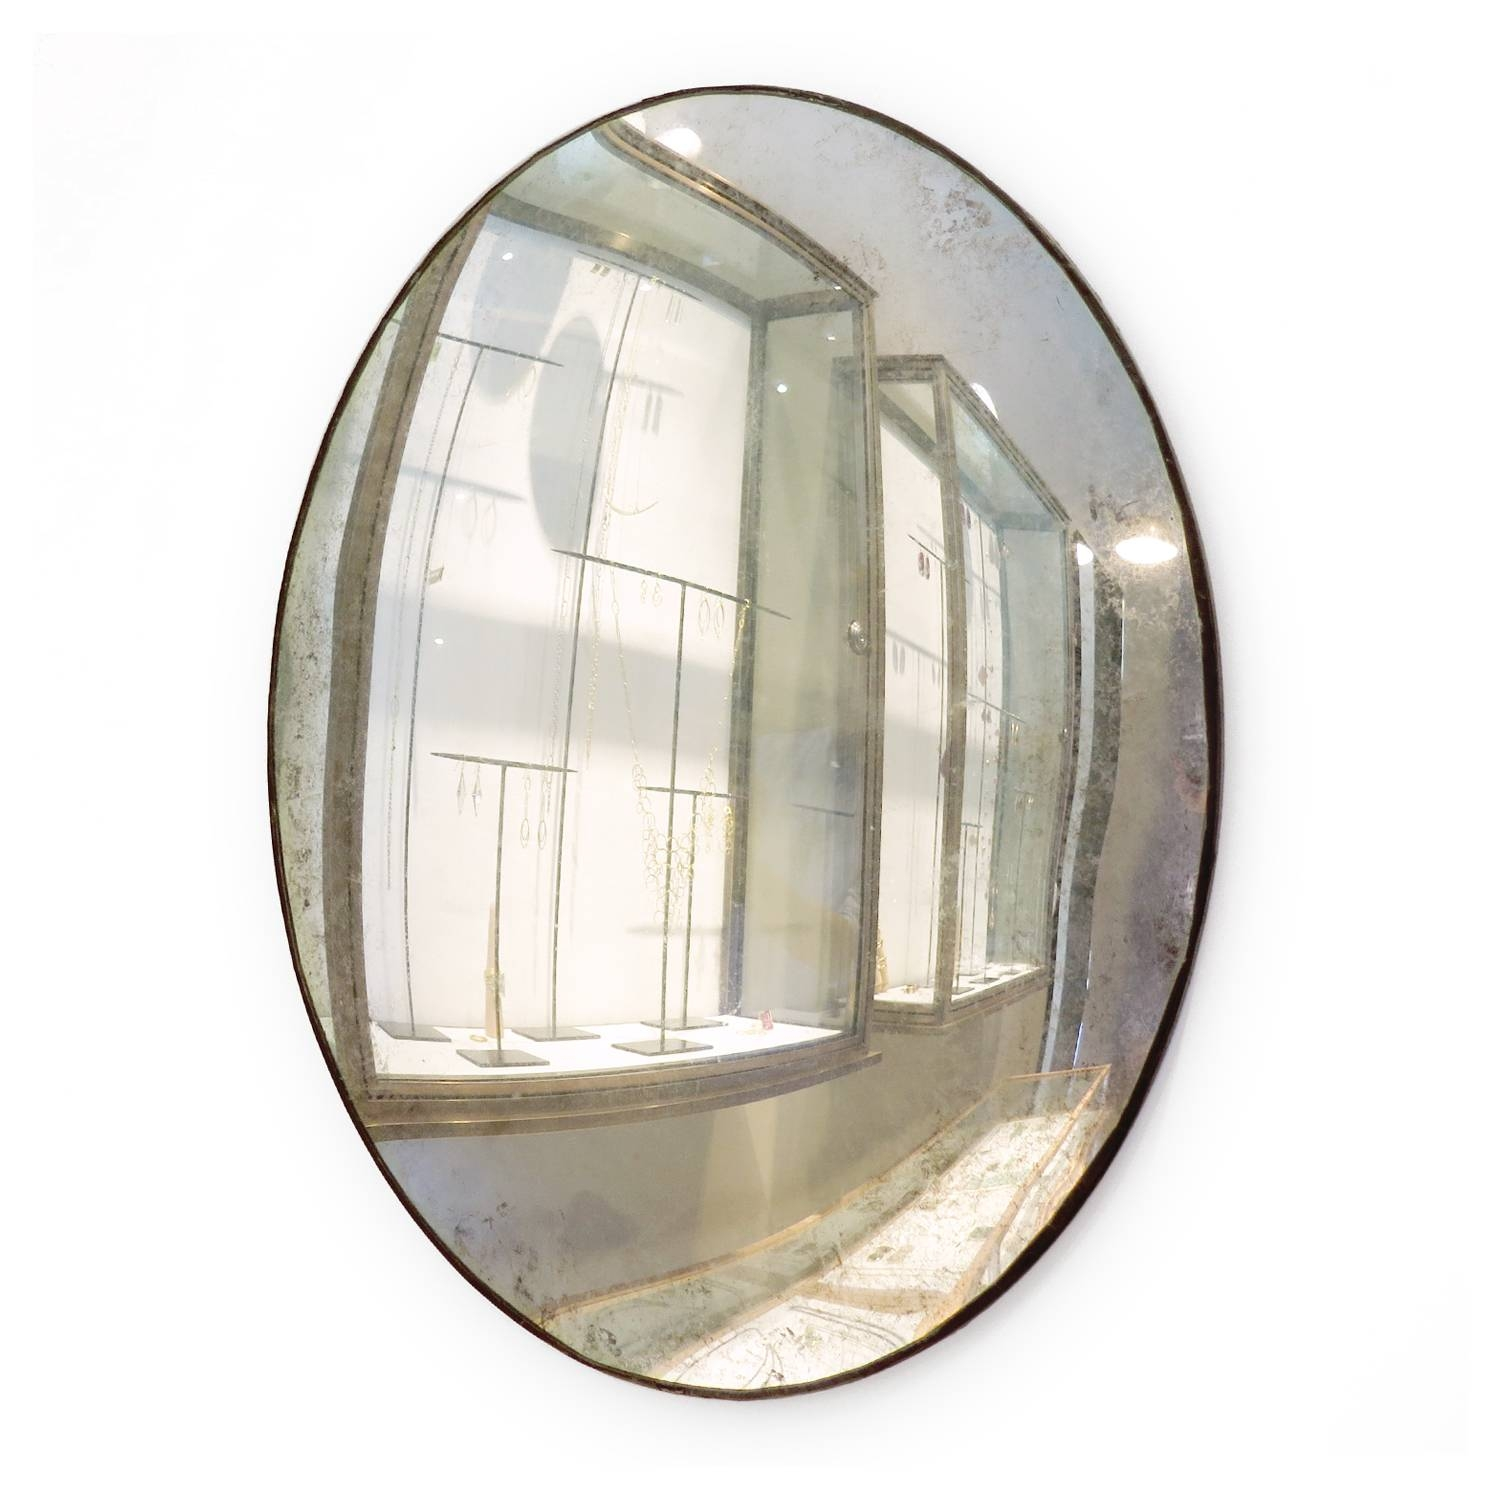 Maureen Fullam 16 X 20 Inches Large Convex Oval Silver Leafed pertaining to Large Oval Mirrors (Image 15 of 25)